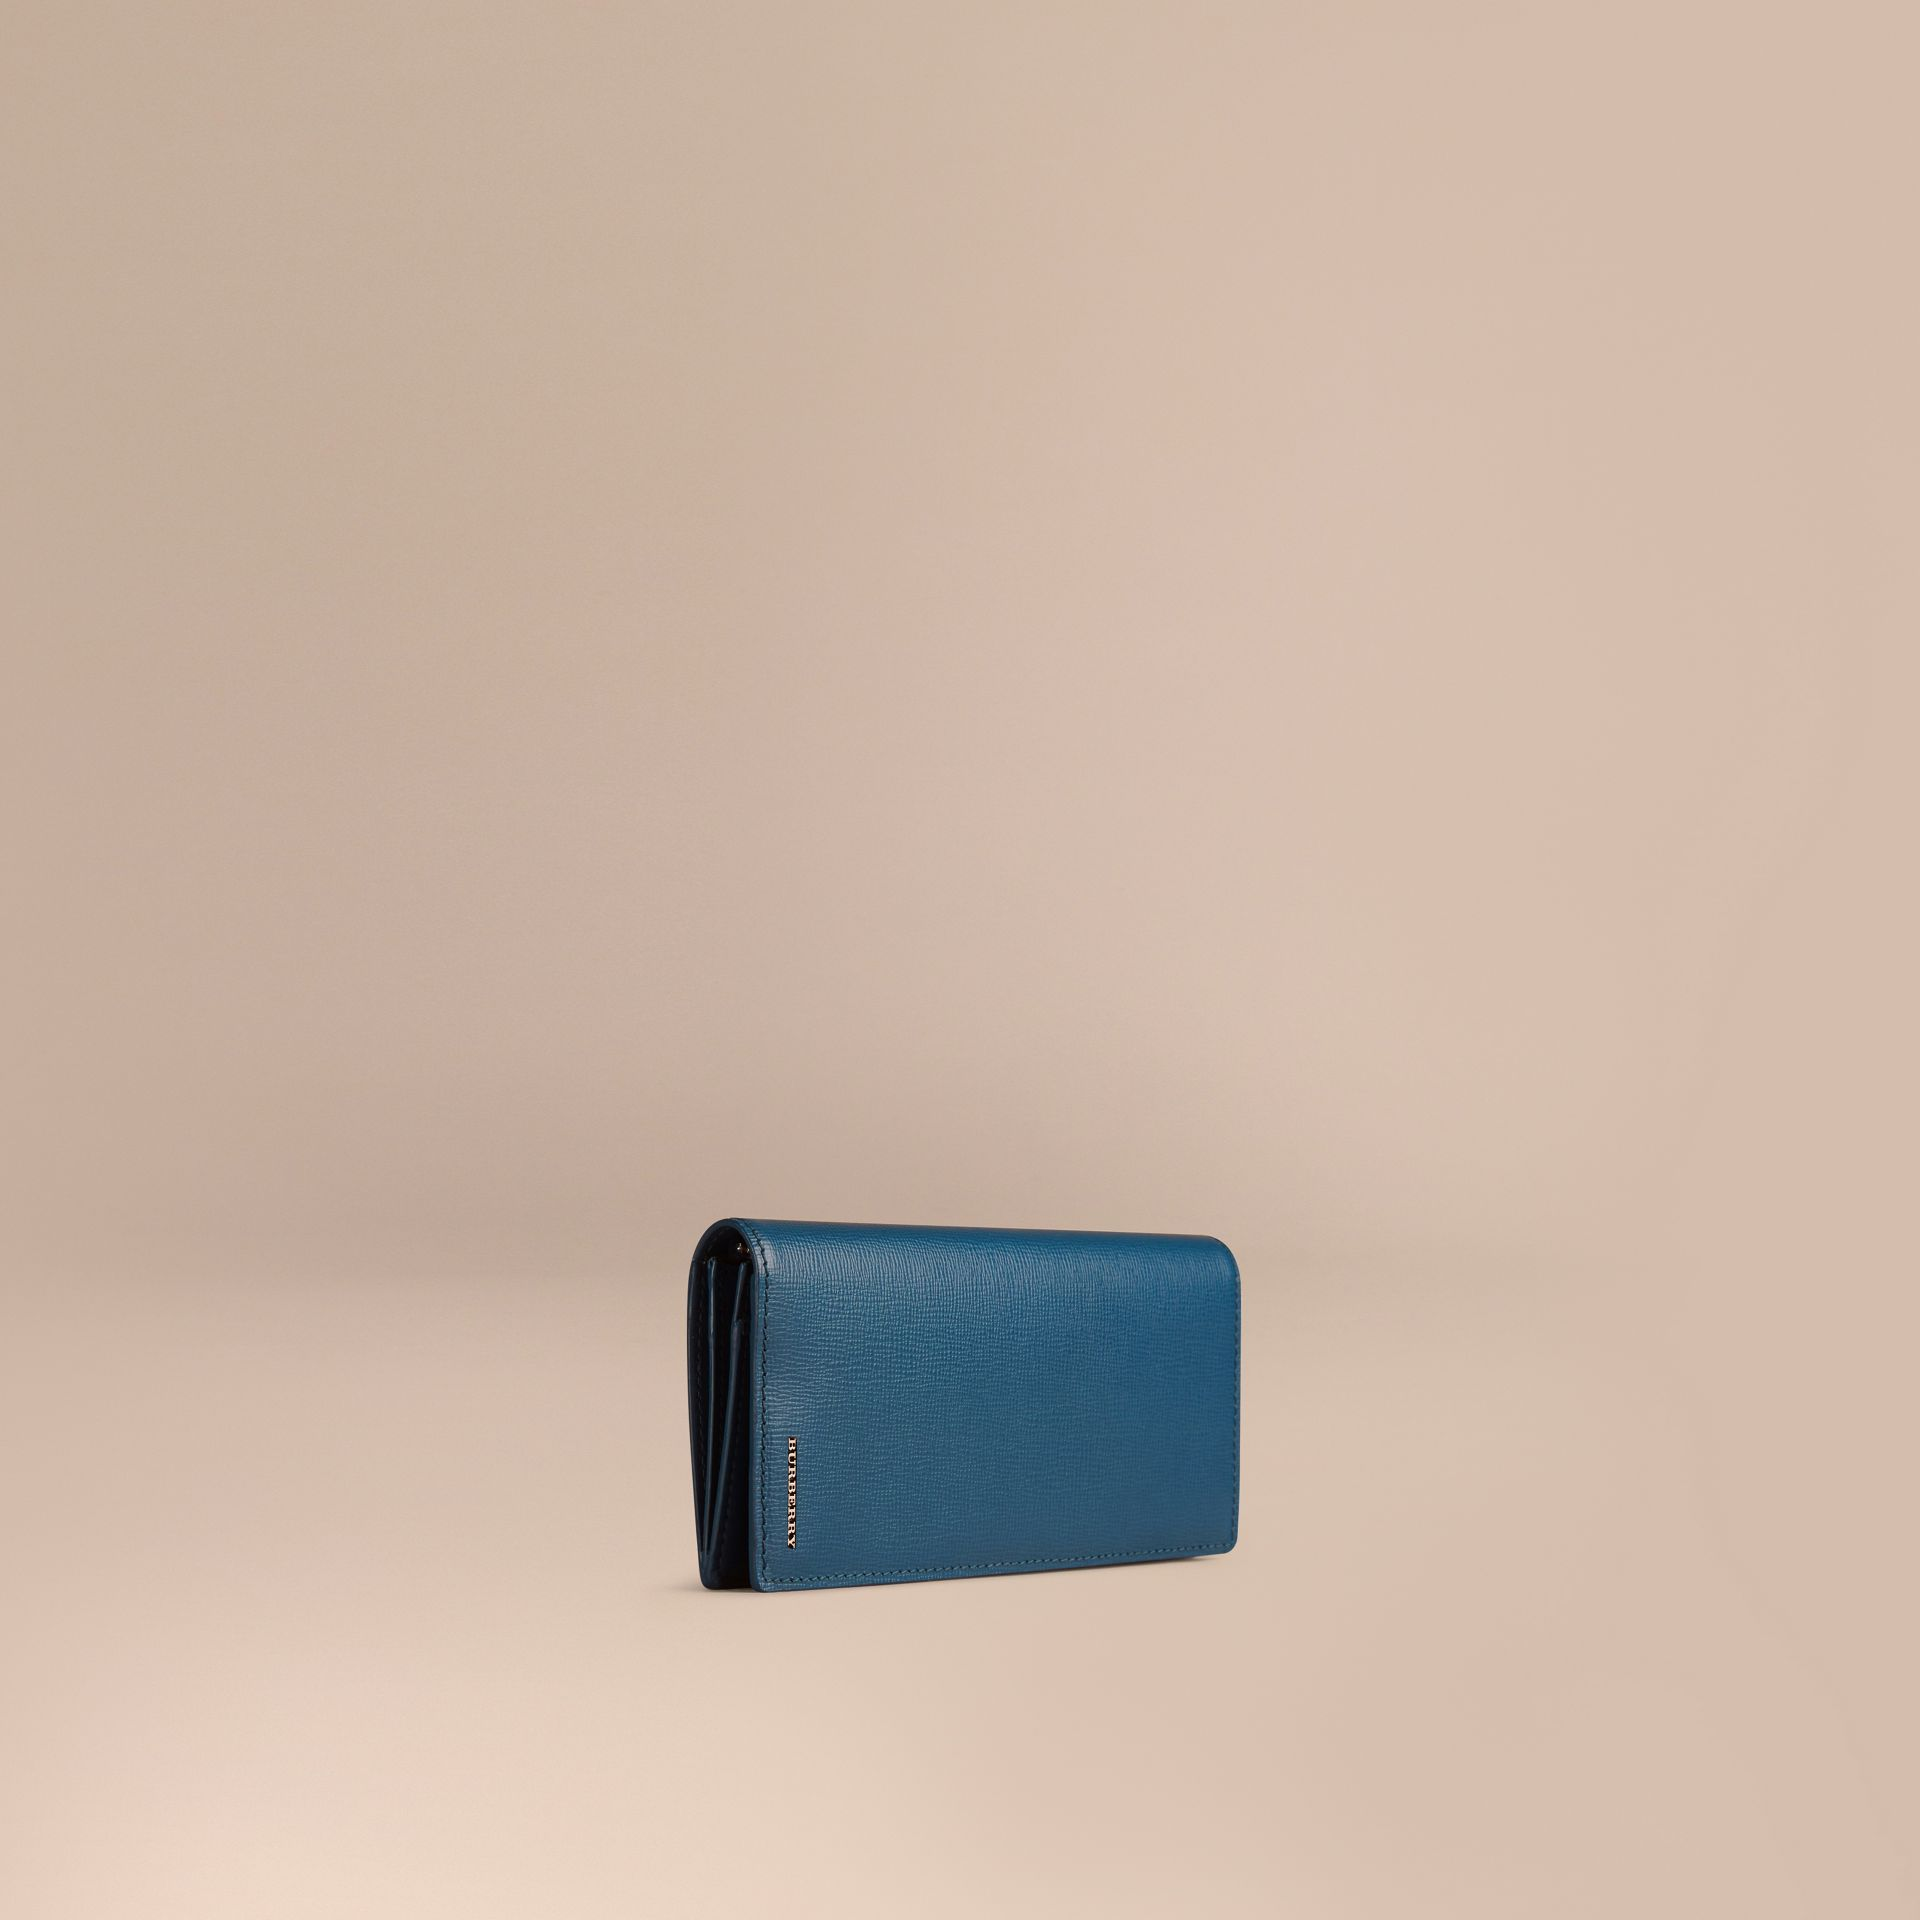 Mineral blue London Leather Continental Wallet Mineral Blue - gallery image 1